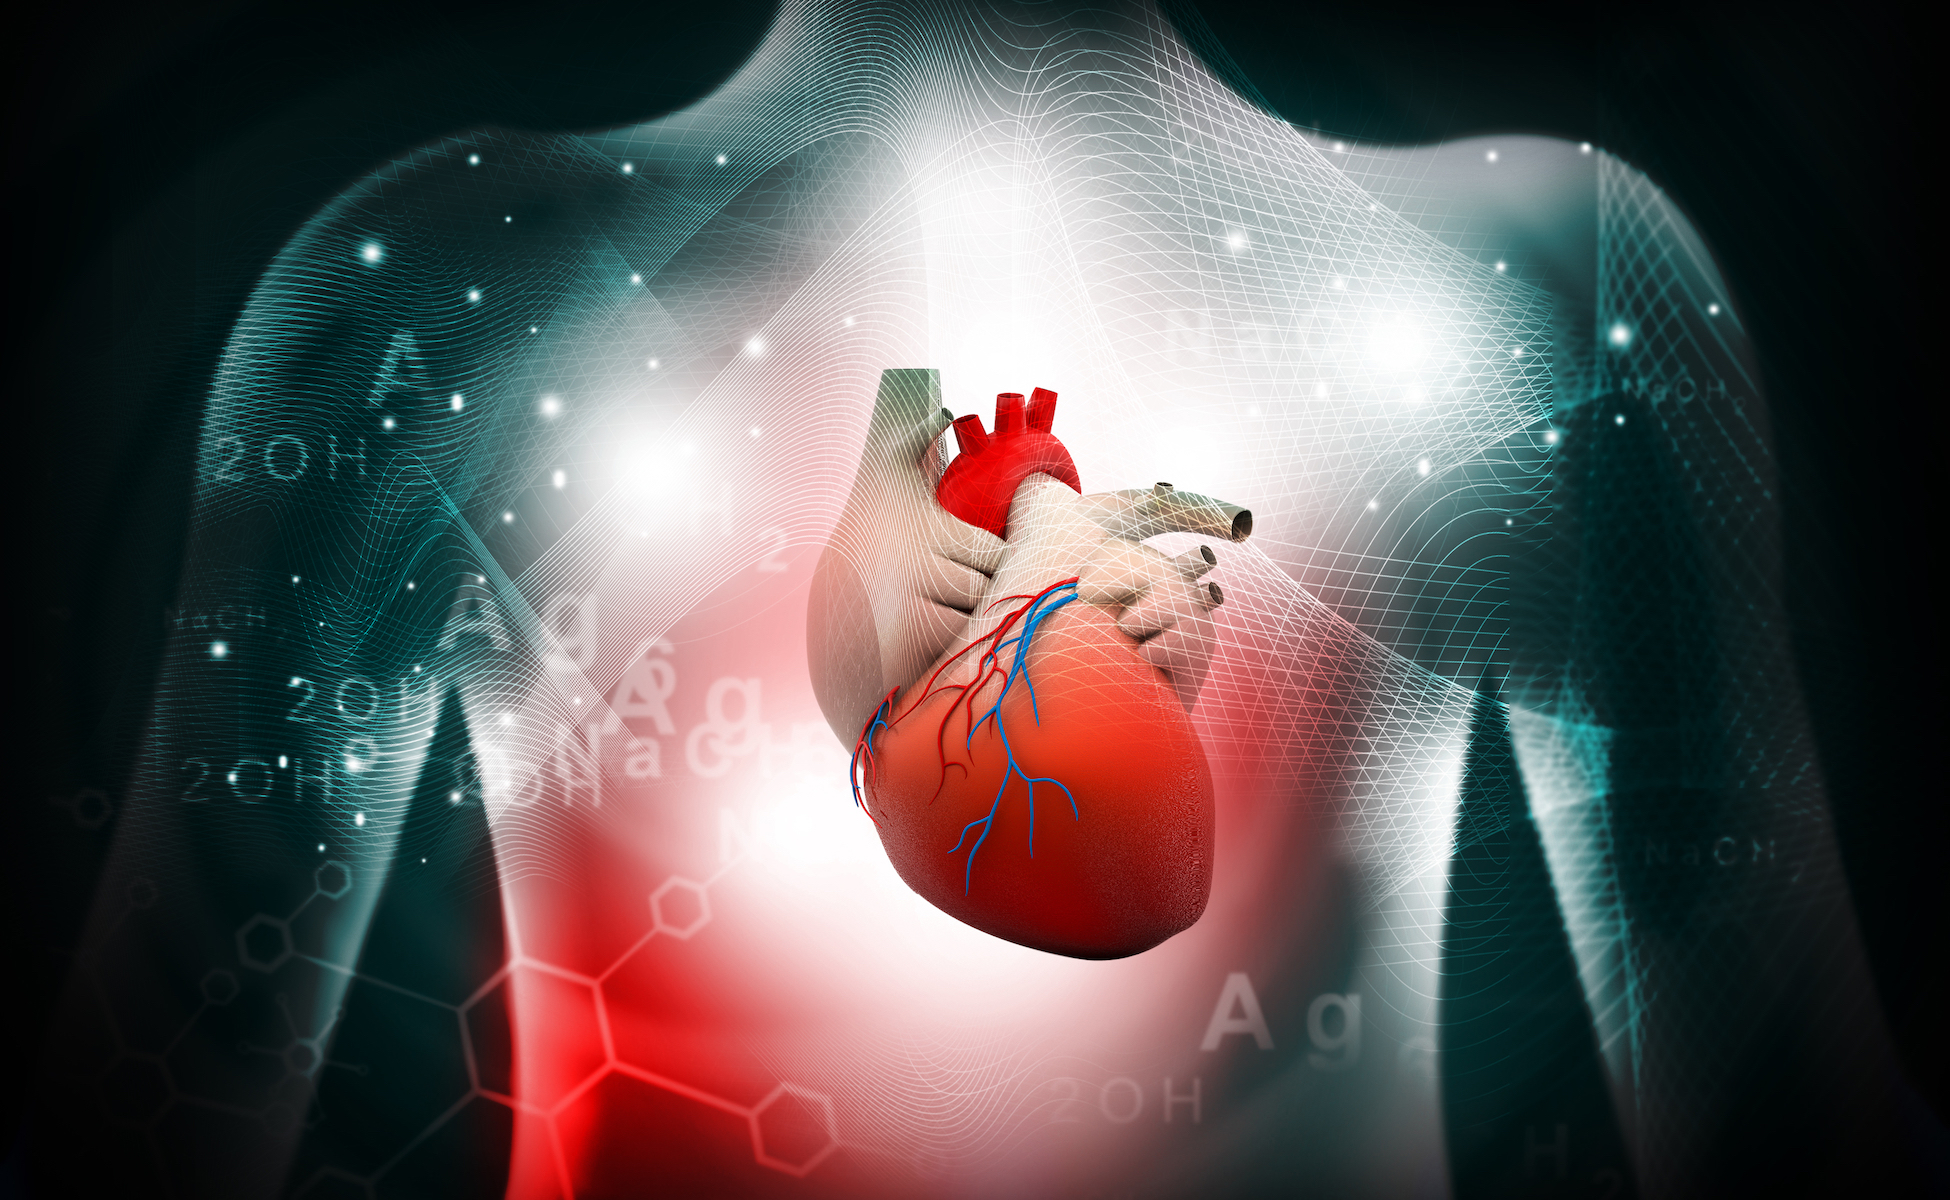 Researchers at the University of Ottawa Heart Institute have found that women have higher rates of death from heart failure than men.